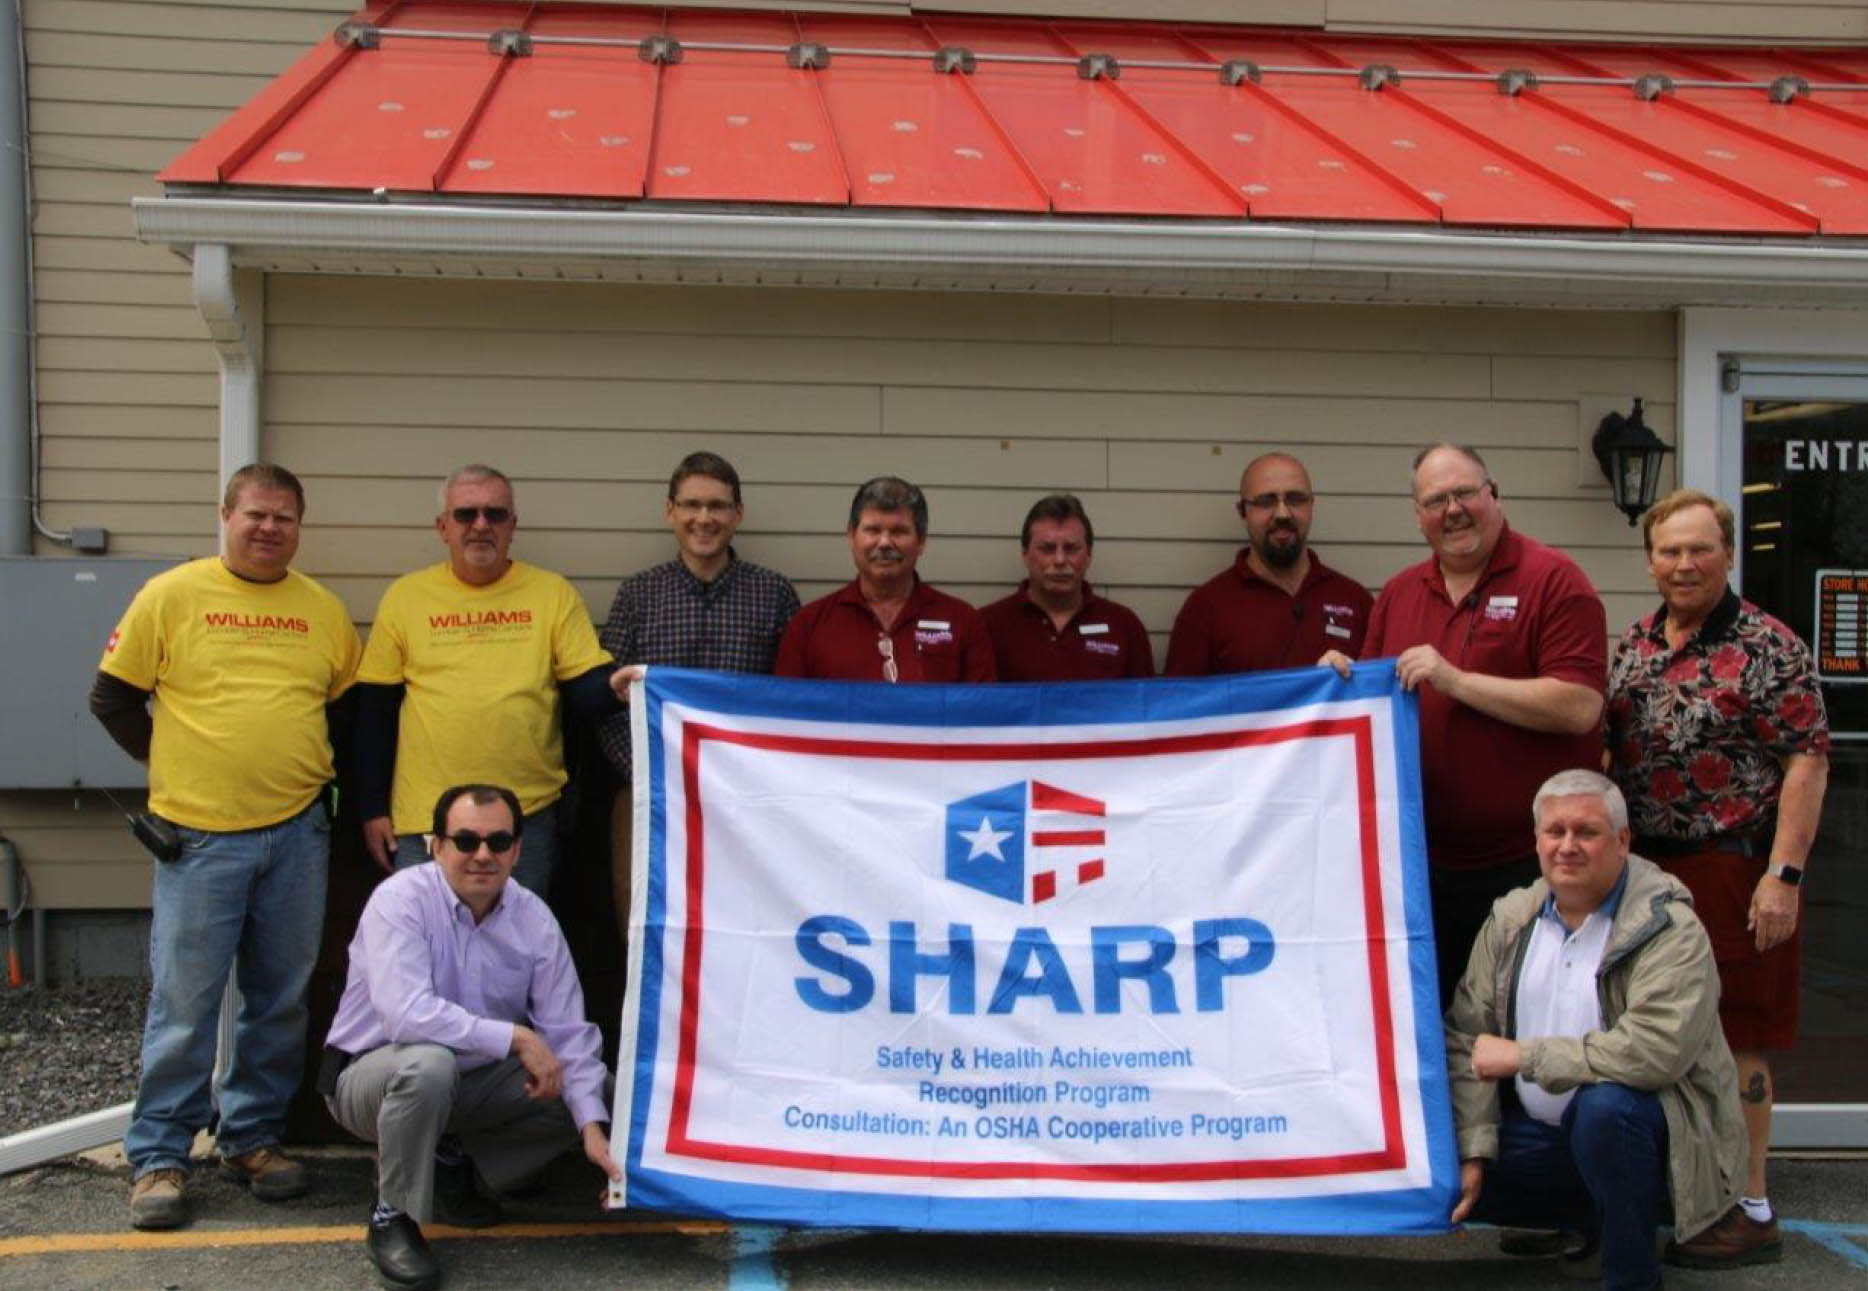 Williams Lumber & Home Centers Team Celebrates Earning SHARP Recognition  (Left to Right: T.J. Keeler, Kevin Blair, Jim Cataquet (kneeling), Tom Jozefowicz, Gary Strompf, Darryl Muller, Mike Staccio, Rich Fitzgerald, Geoff Holodook (kneeling), Sandy Williams)